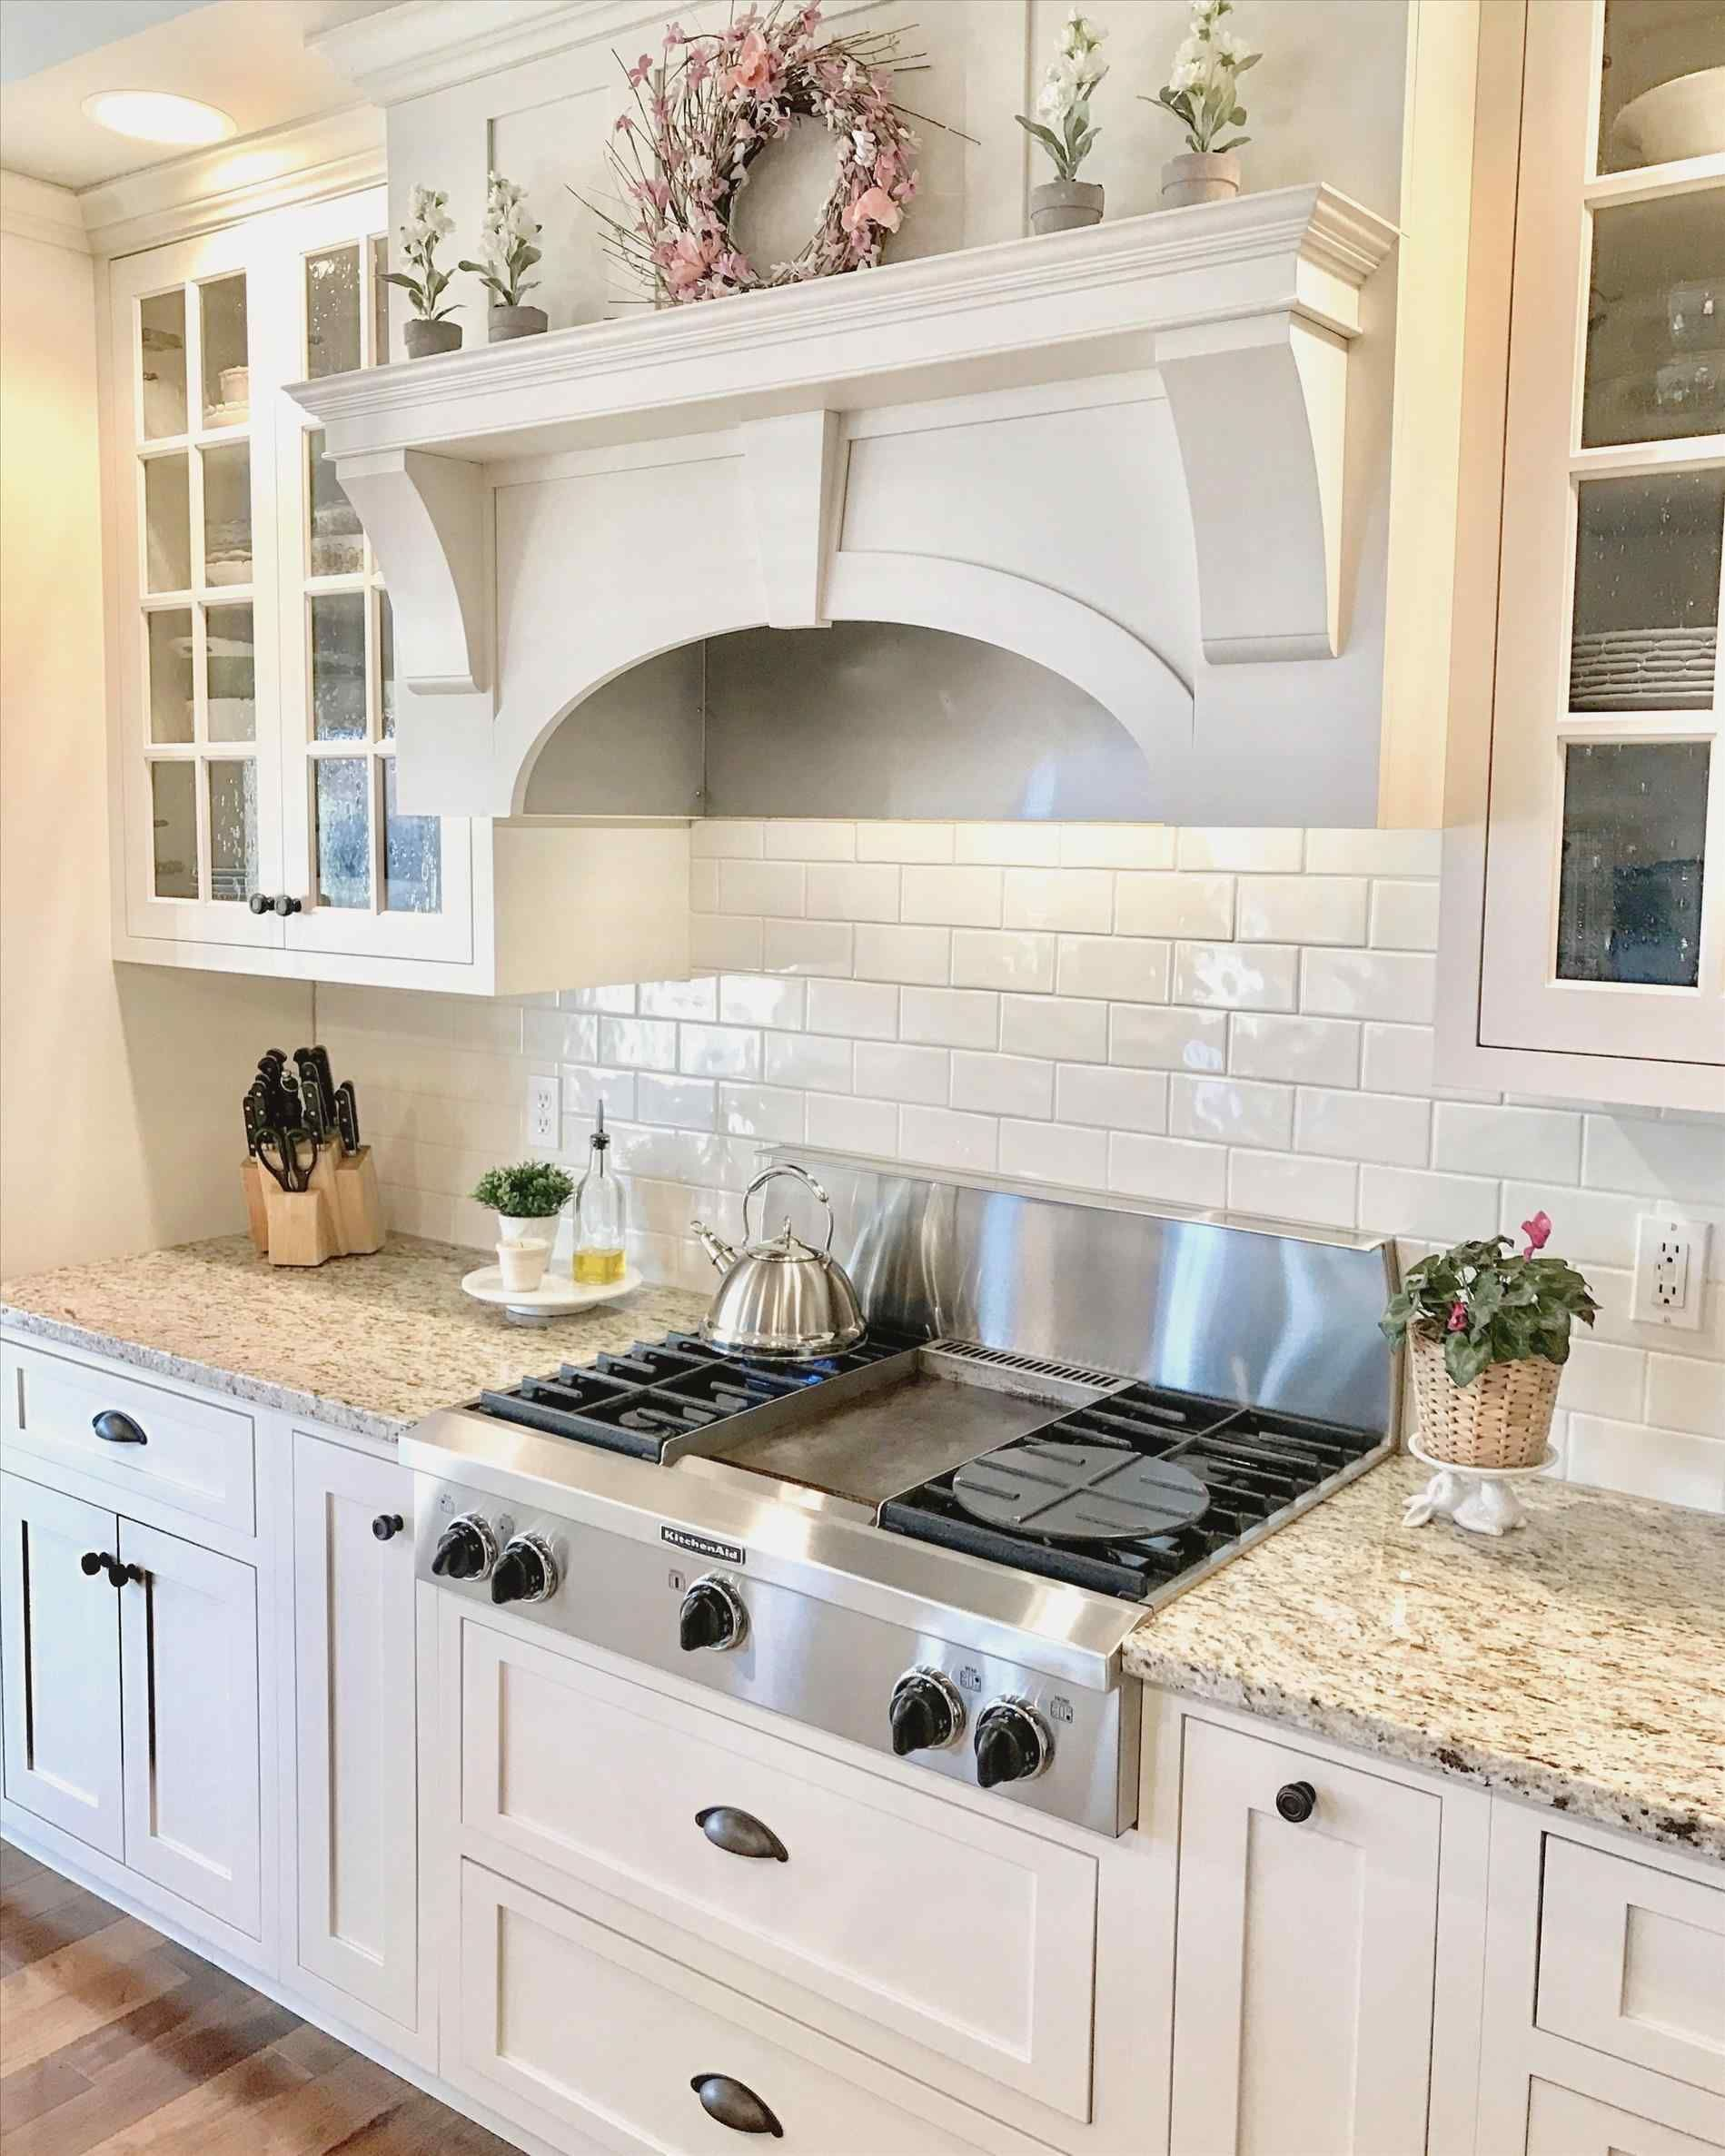 Top 15 White Kitchen Cabinets With Gold Hardware Antique White Kitchen Kitchen Cabinets Decor Antique White Kitchen Cabinets